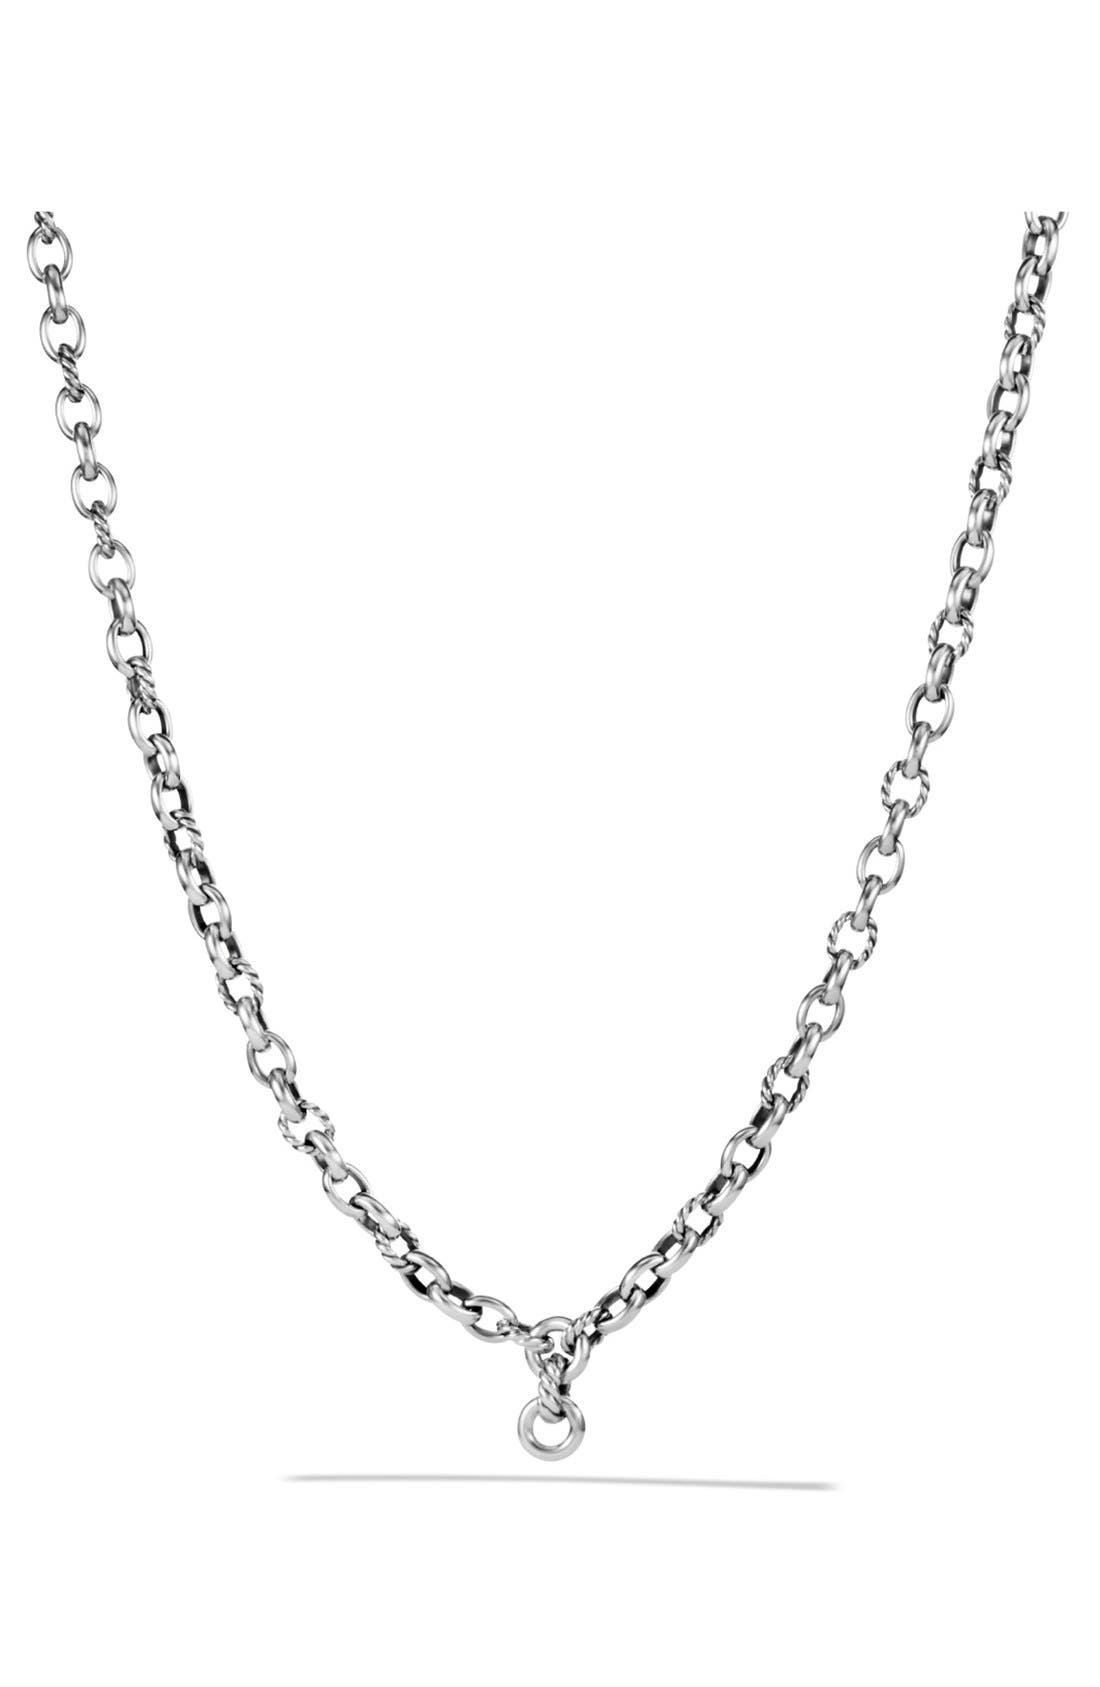 'Chain' Oval Link Chain Necklace,                             Main thumbnail 1, color,                             Silver